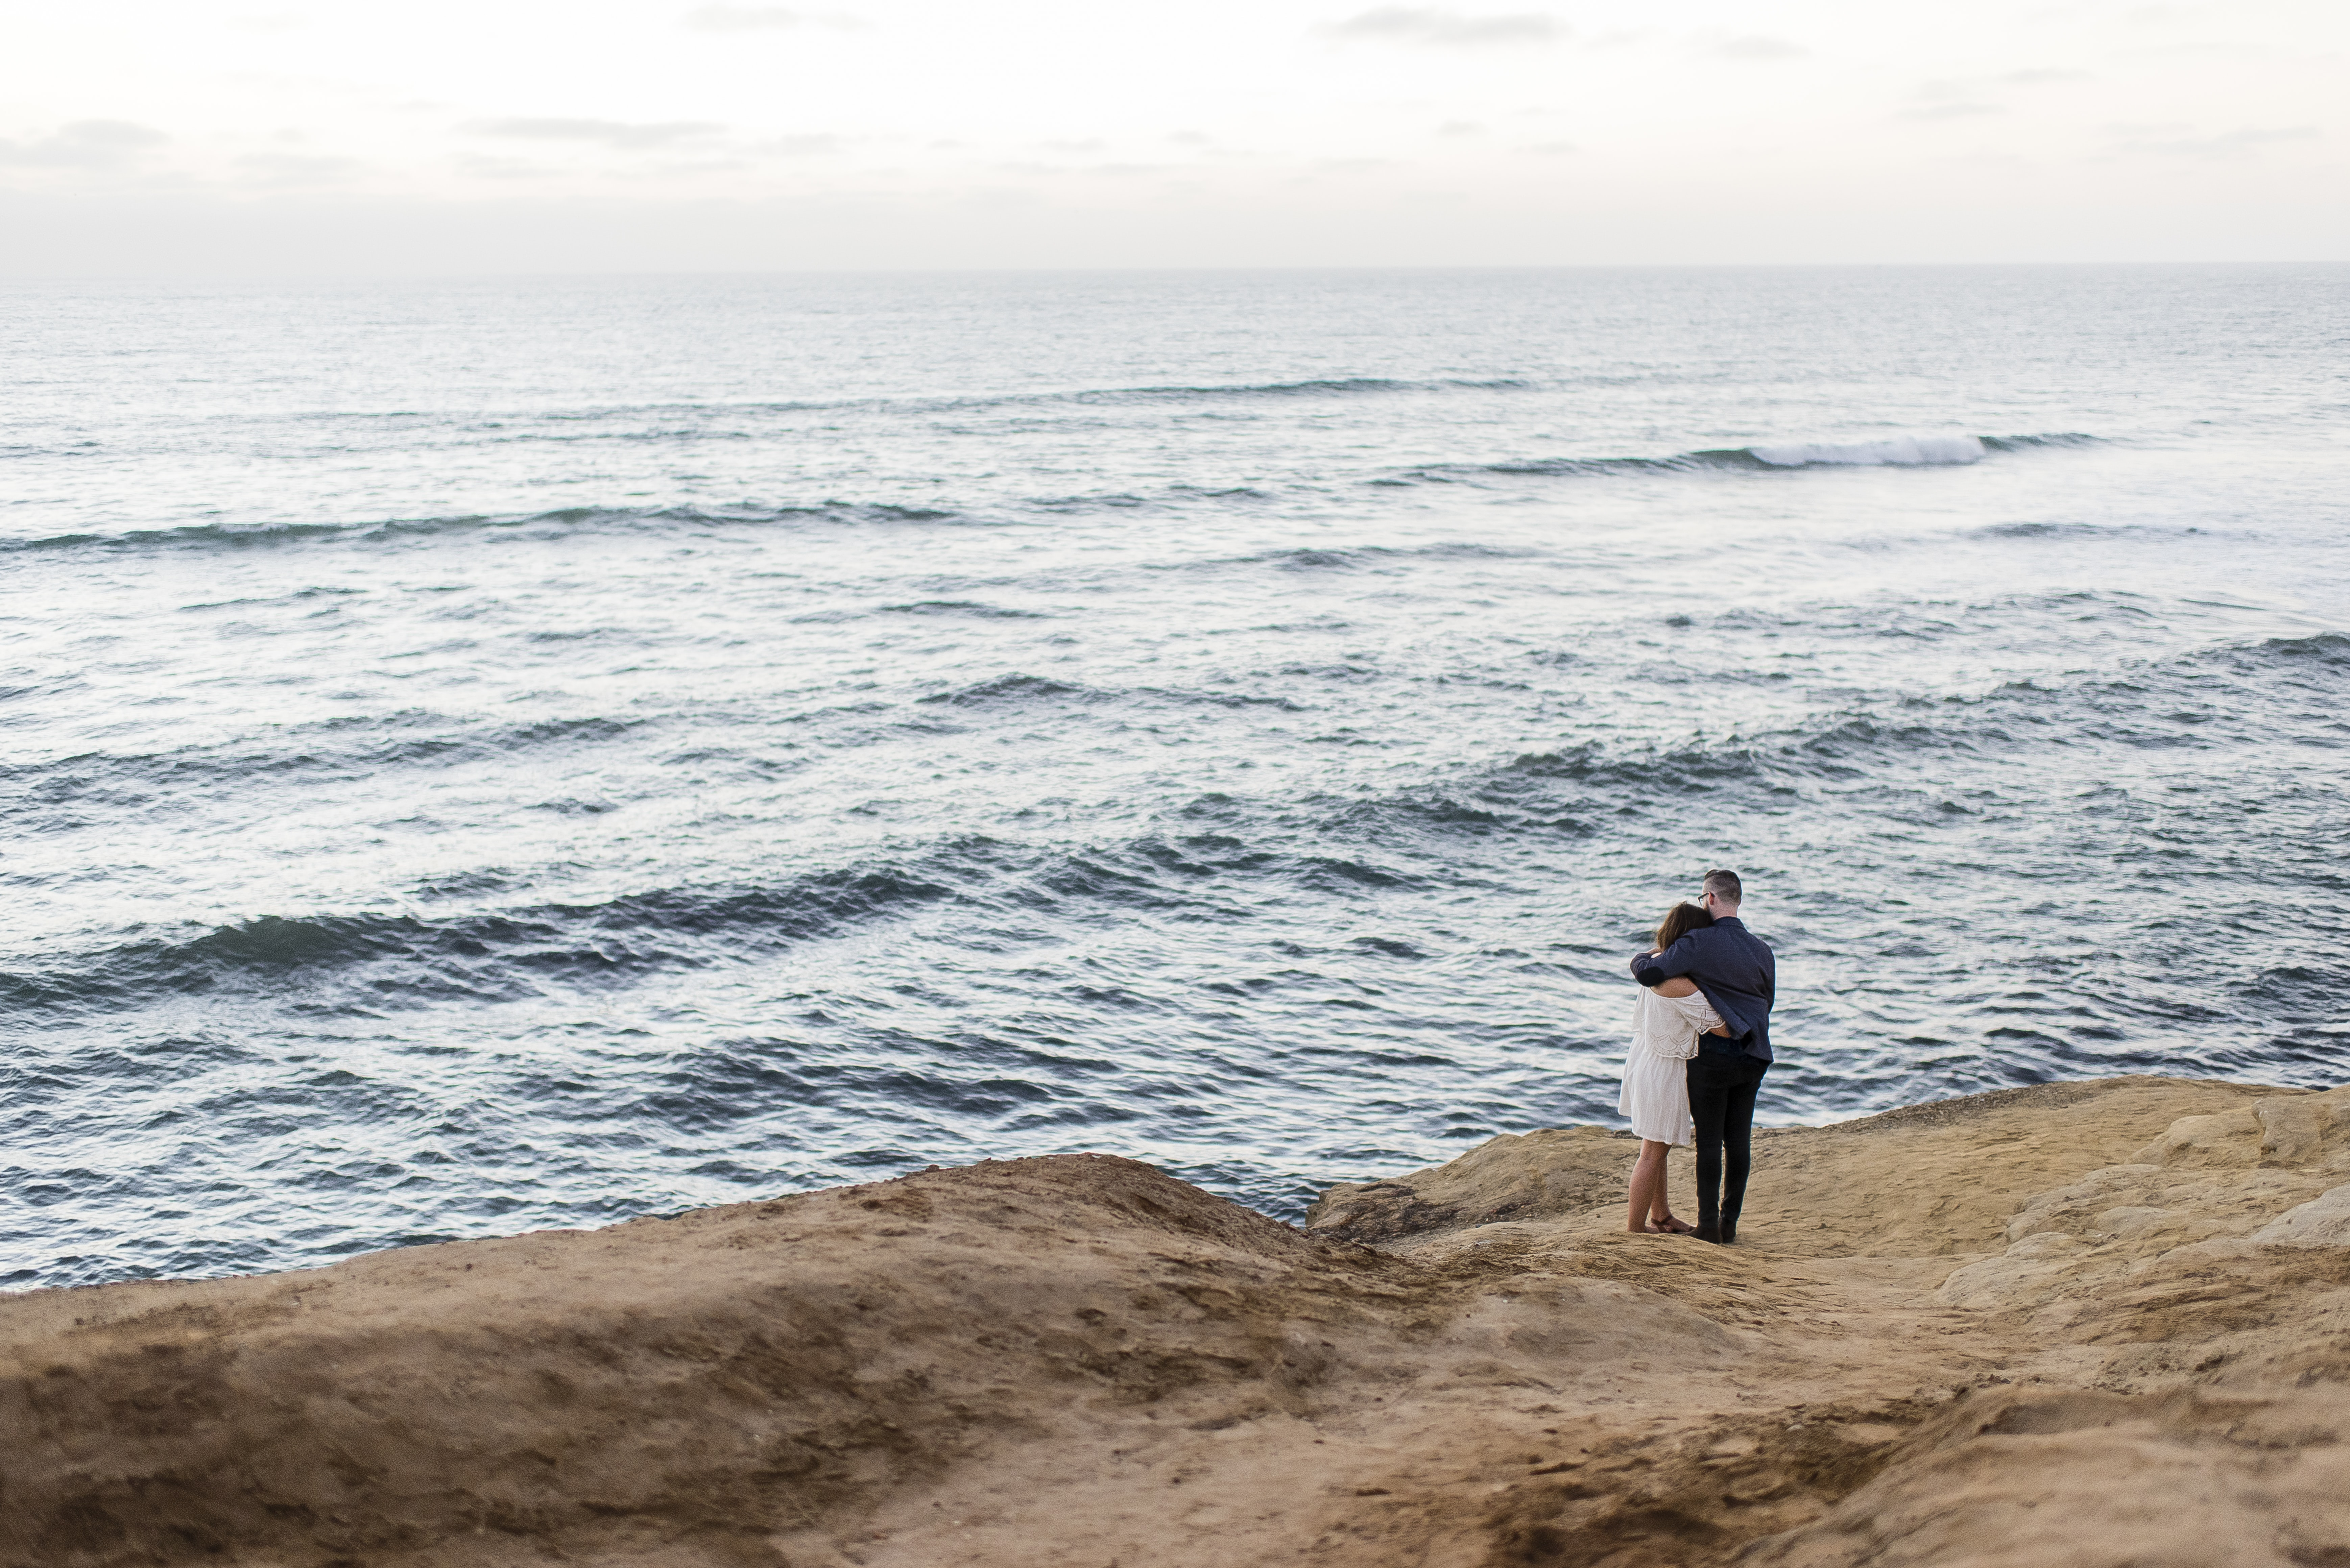 A couple stands on a rocky surface by the ocean, their arms around each other